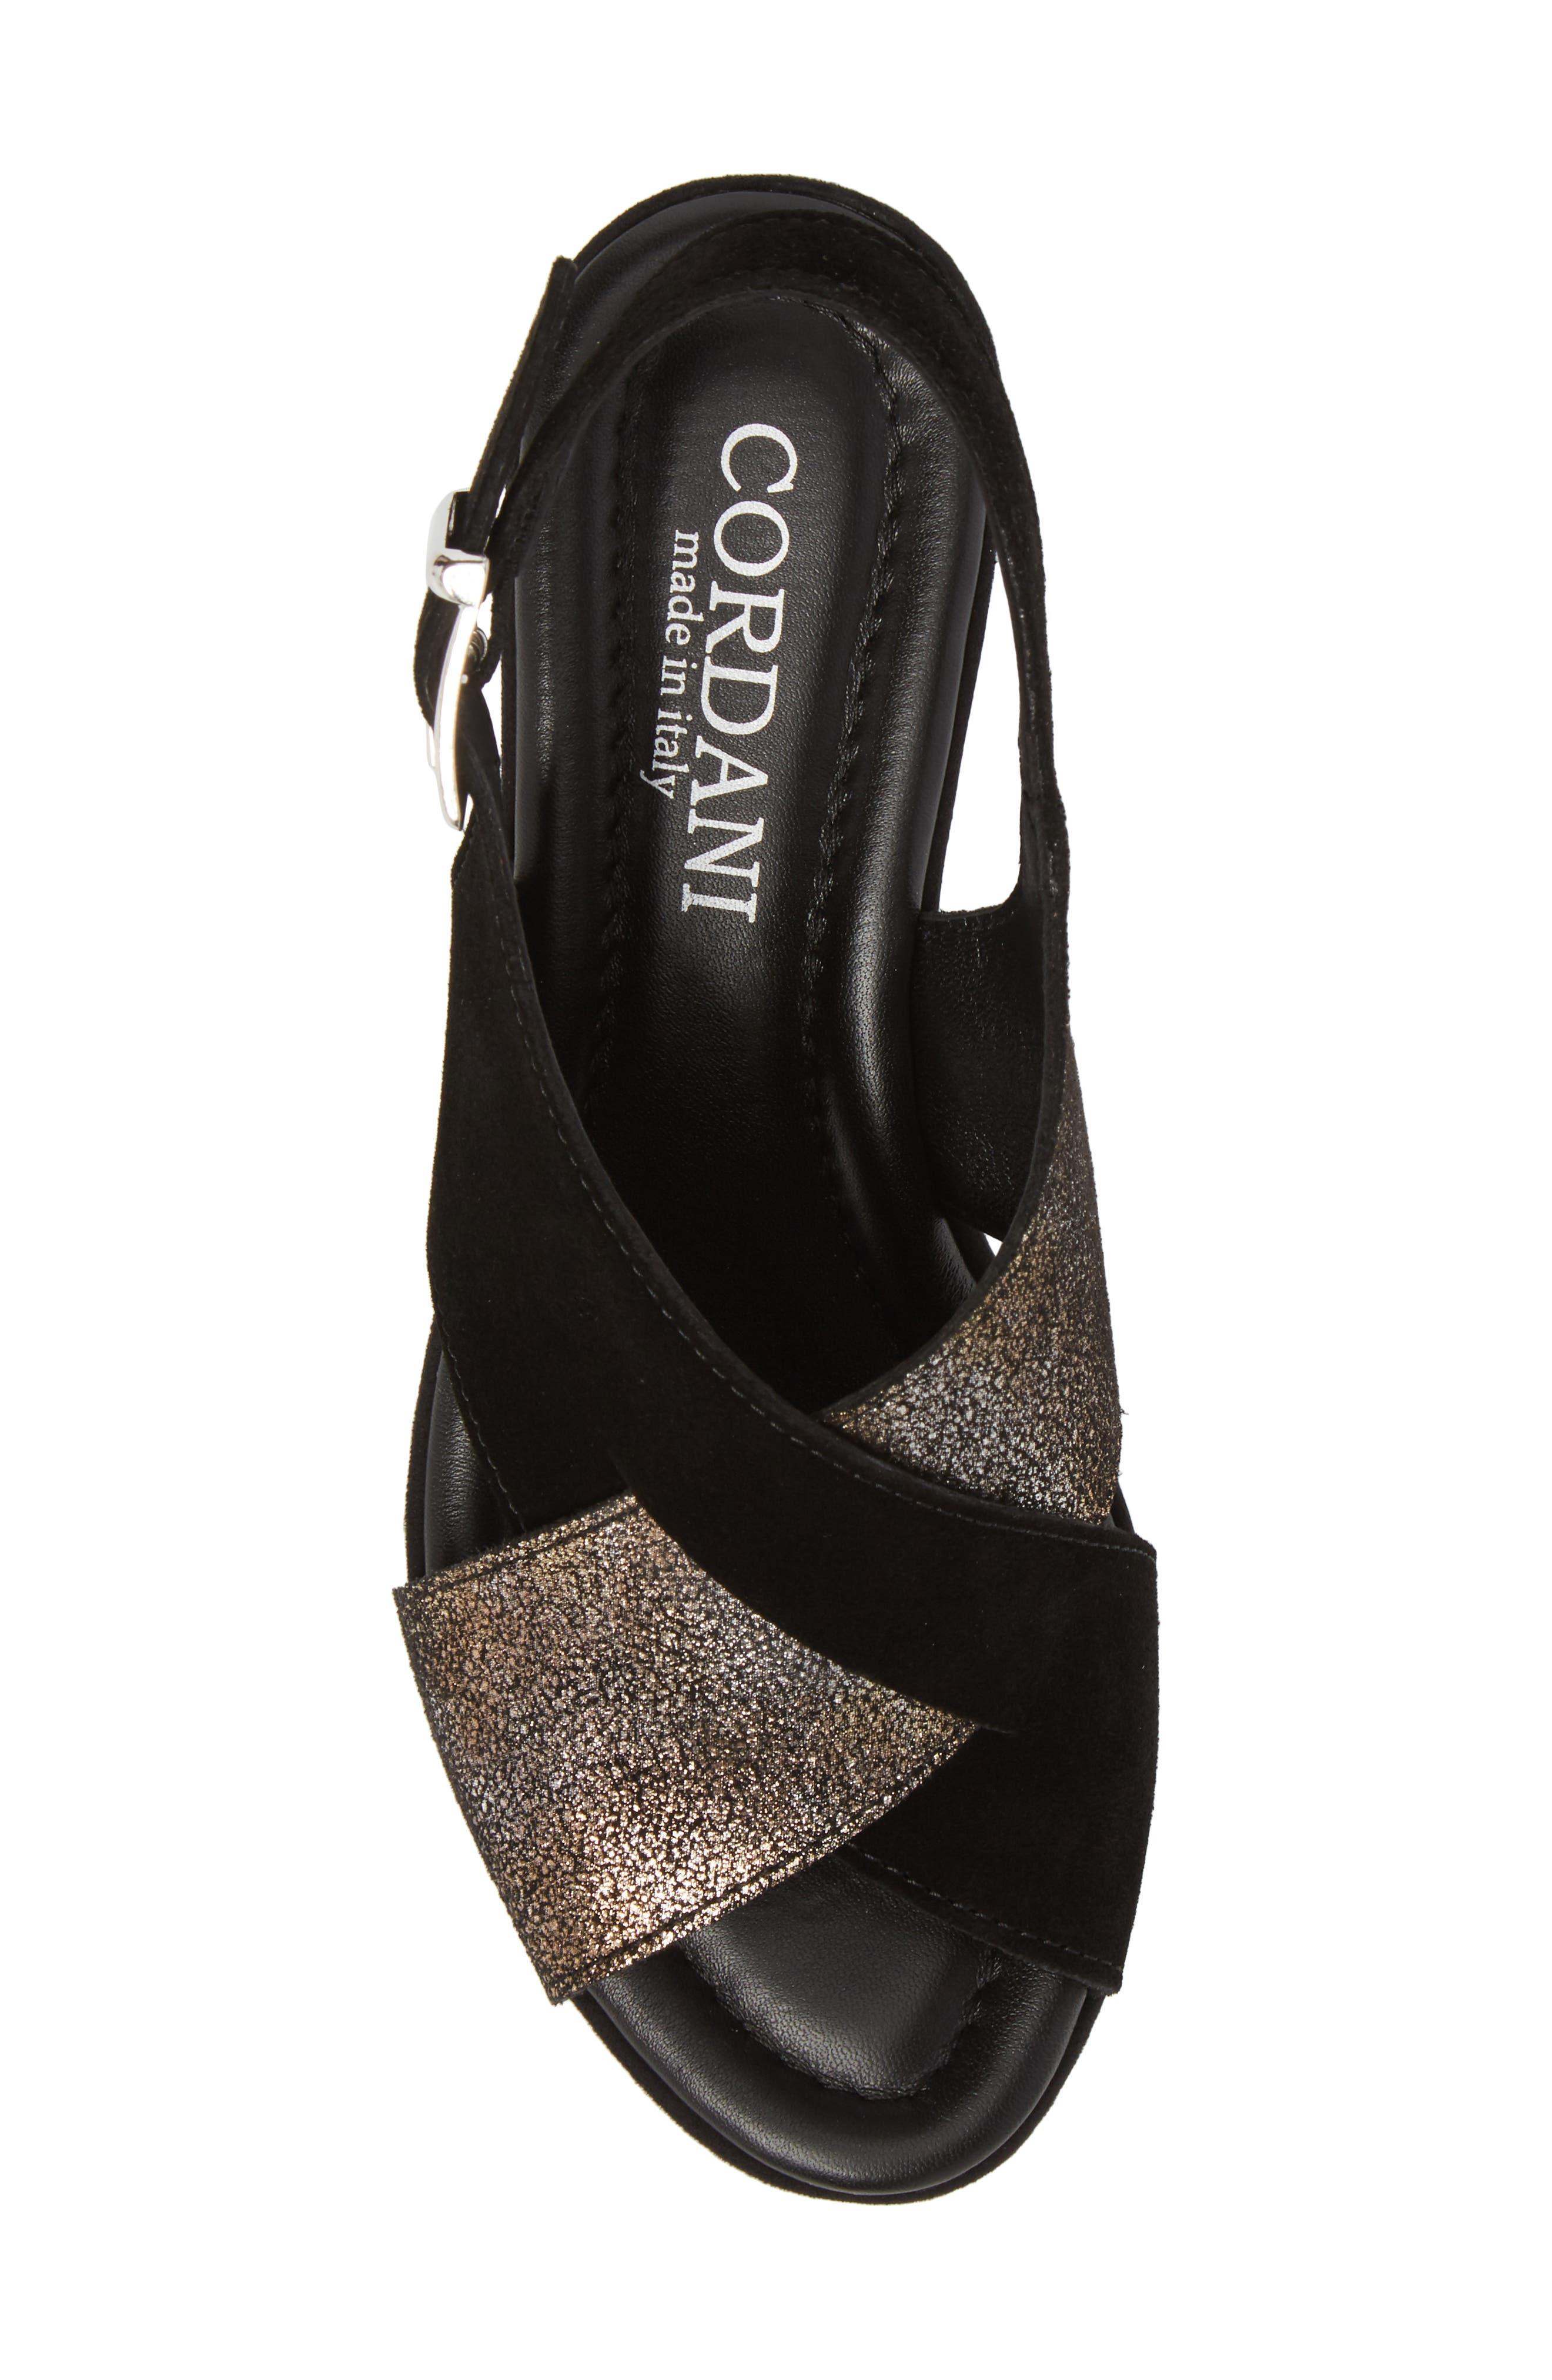 Cleary Wedge Sandal,                             Alternate thumbnail 5, color,                             Black/ Pewter Suede